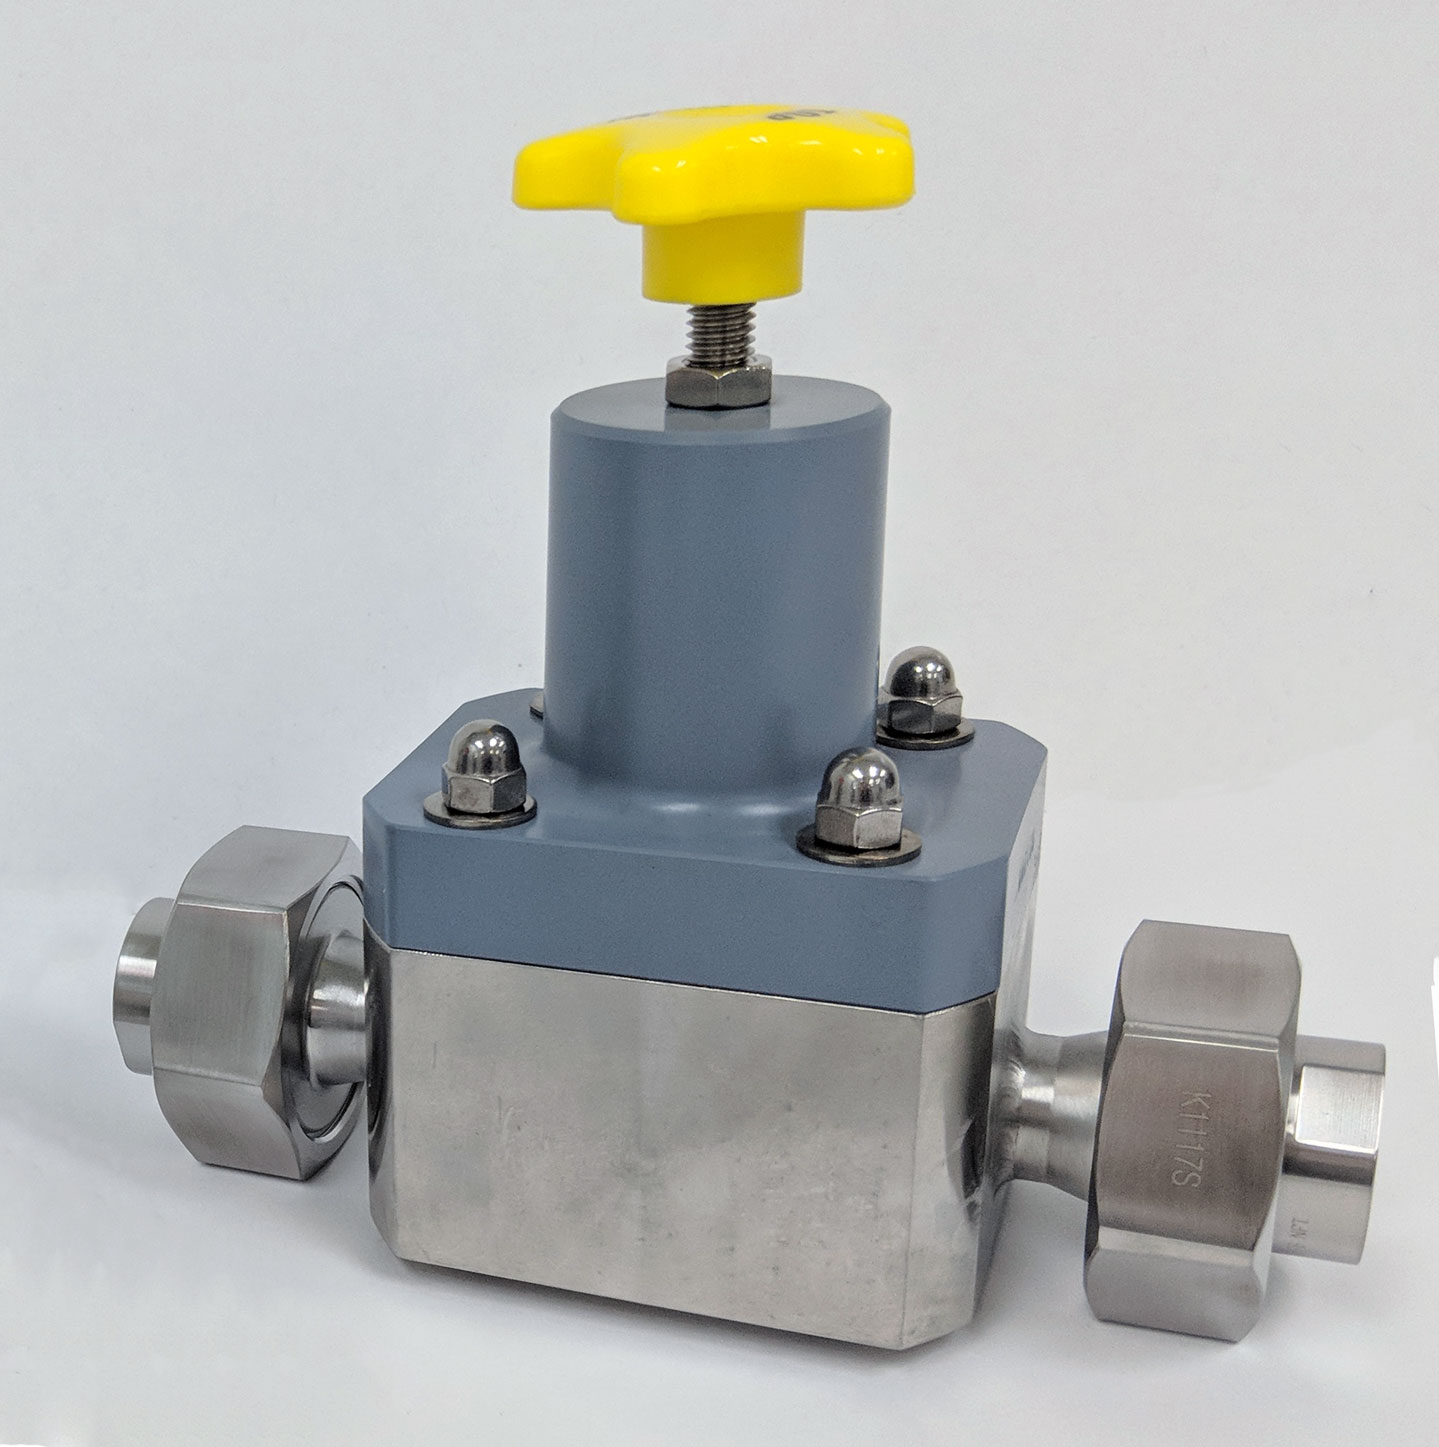 Top Valve Union Connection Valve in Stainless Steel